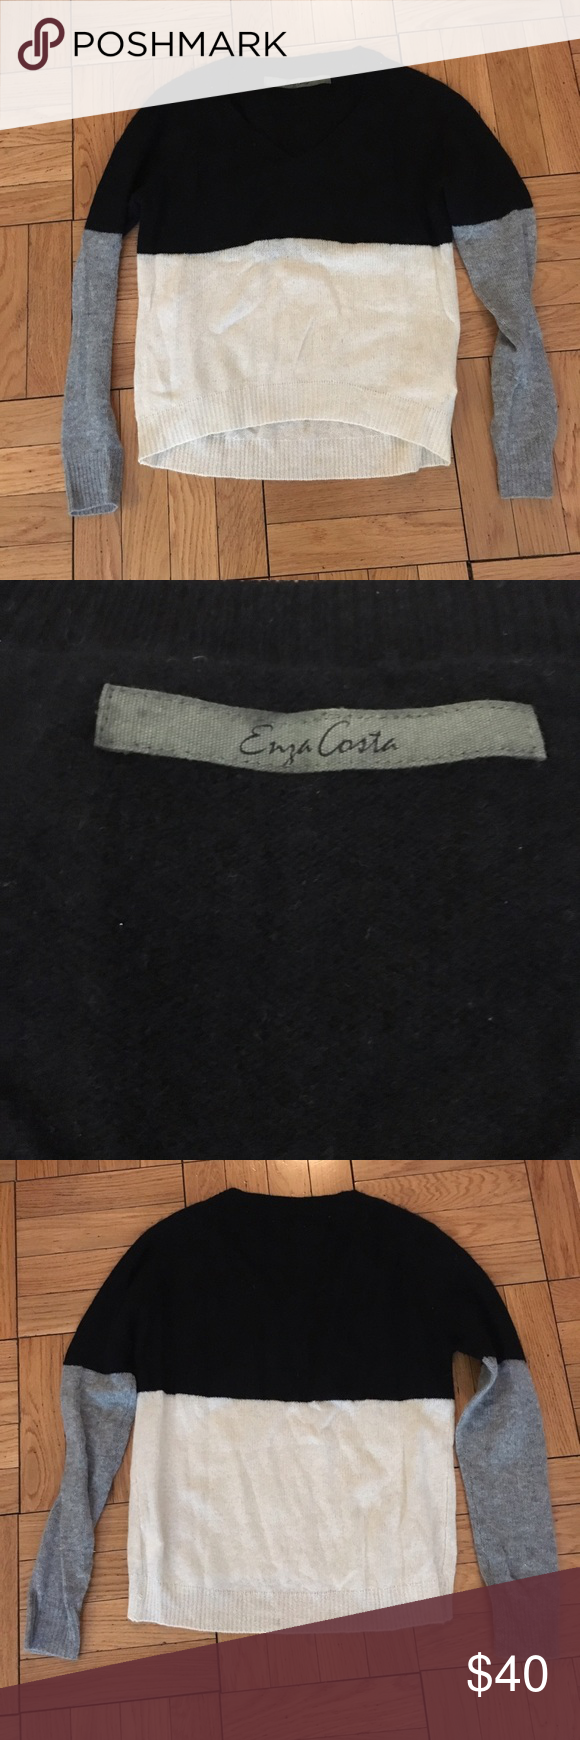 Enza Costa Cashmere crew neck sweater Cashmere colorblock sweater in grey, black and white. Great condition. Enza Costa Sweaters Crew & Scoop Necks